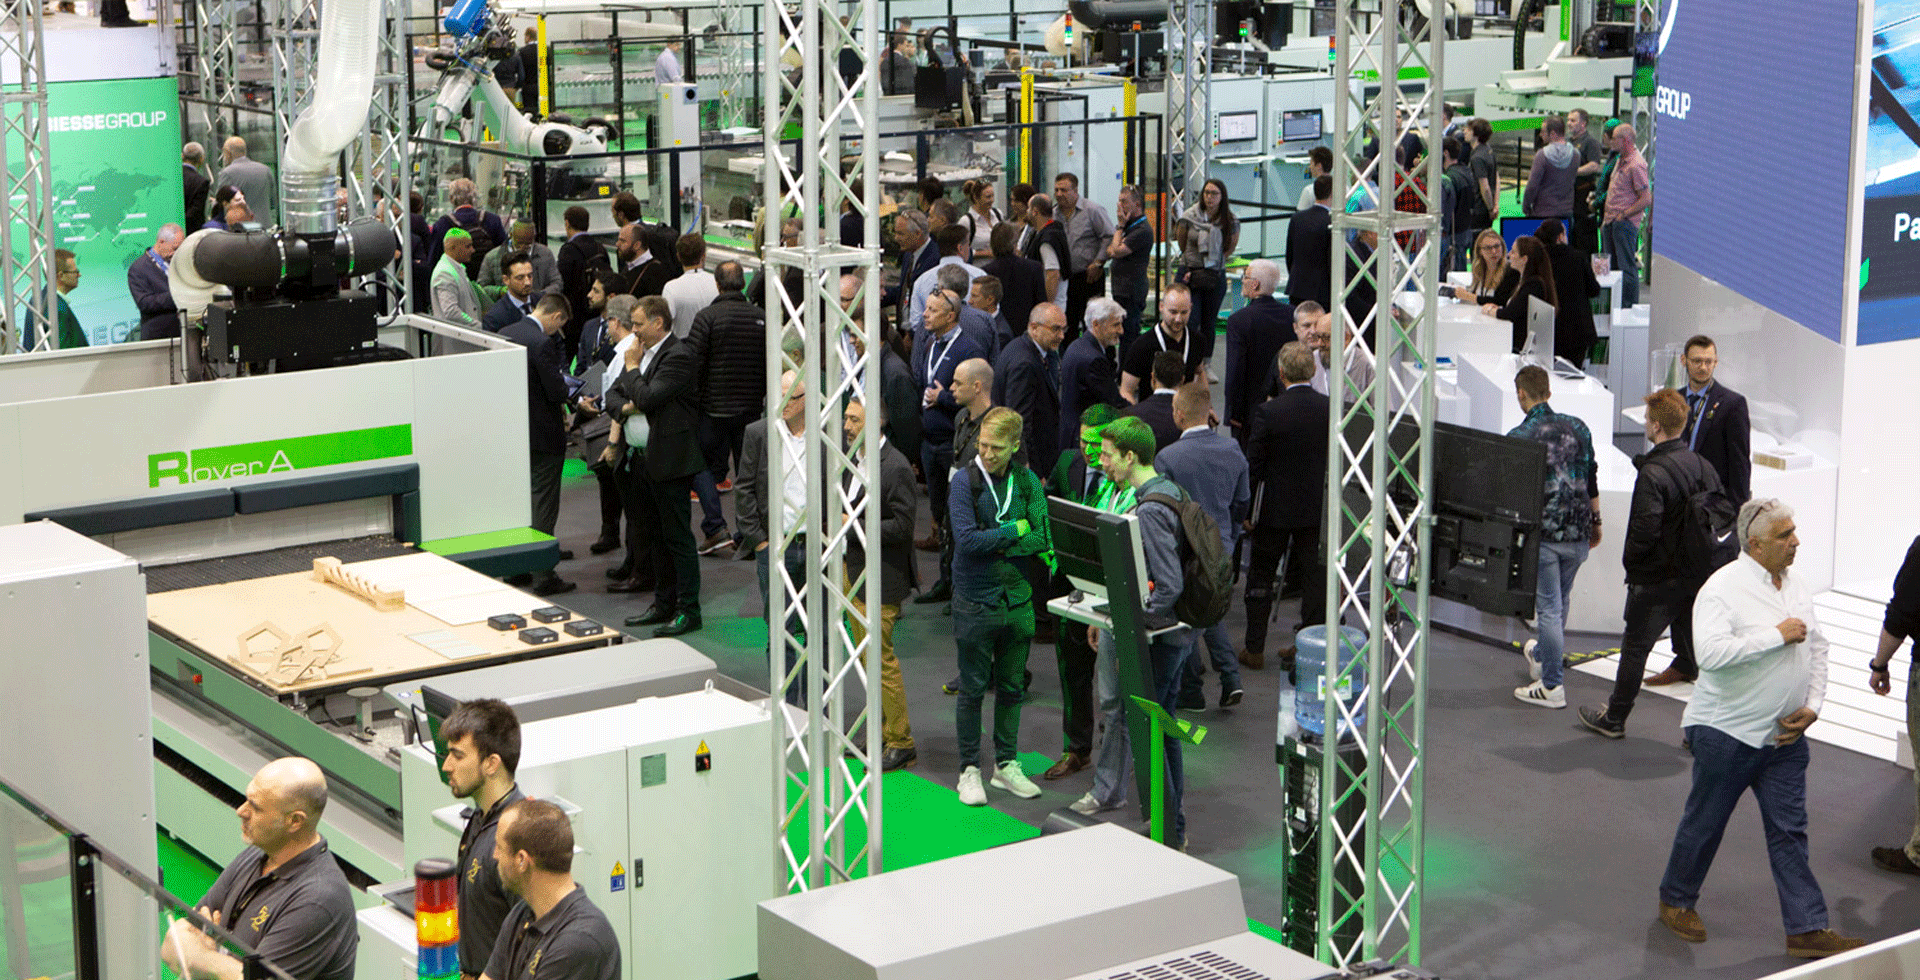 Biesse at Ligna along with our Partners in Automaction, guiding the digital age.